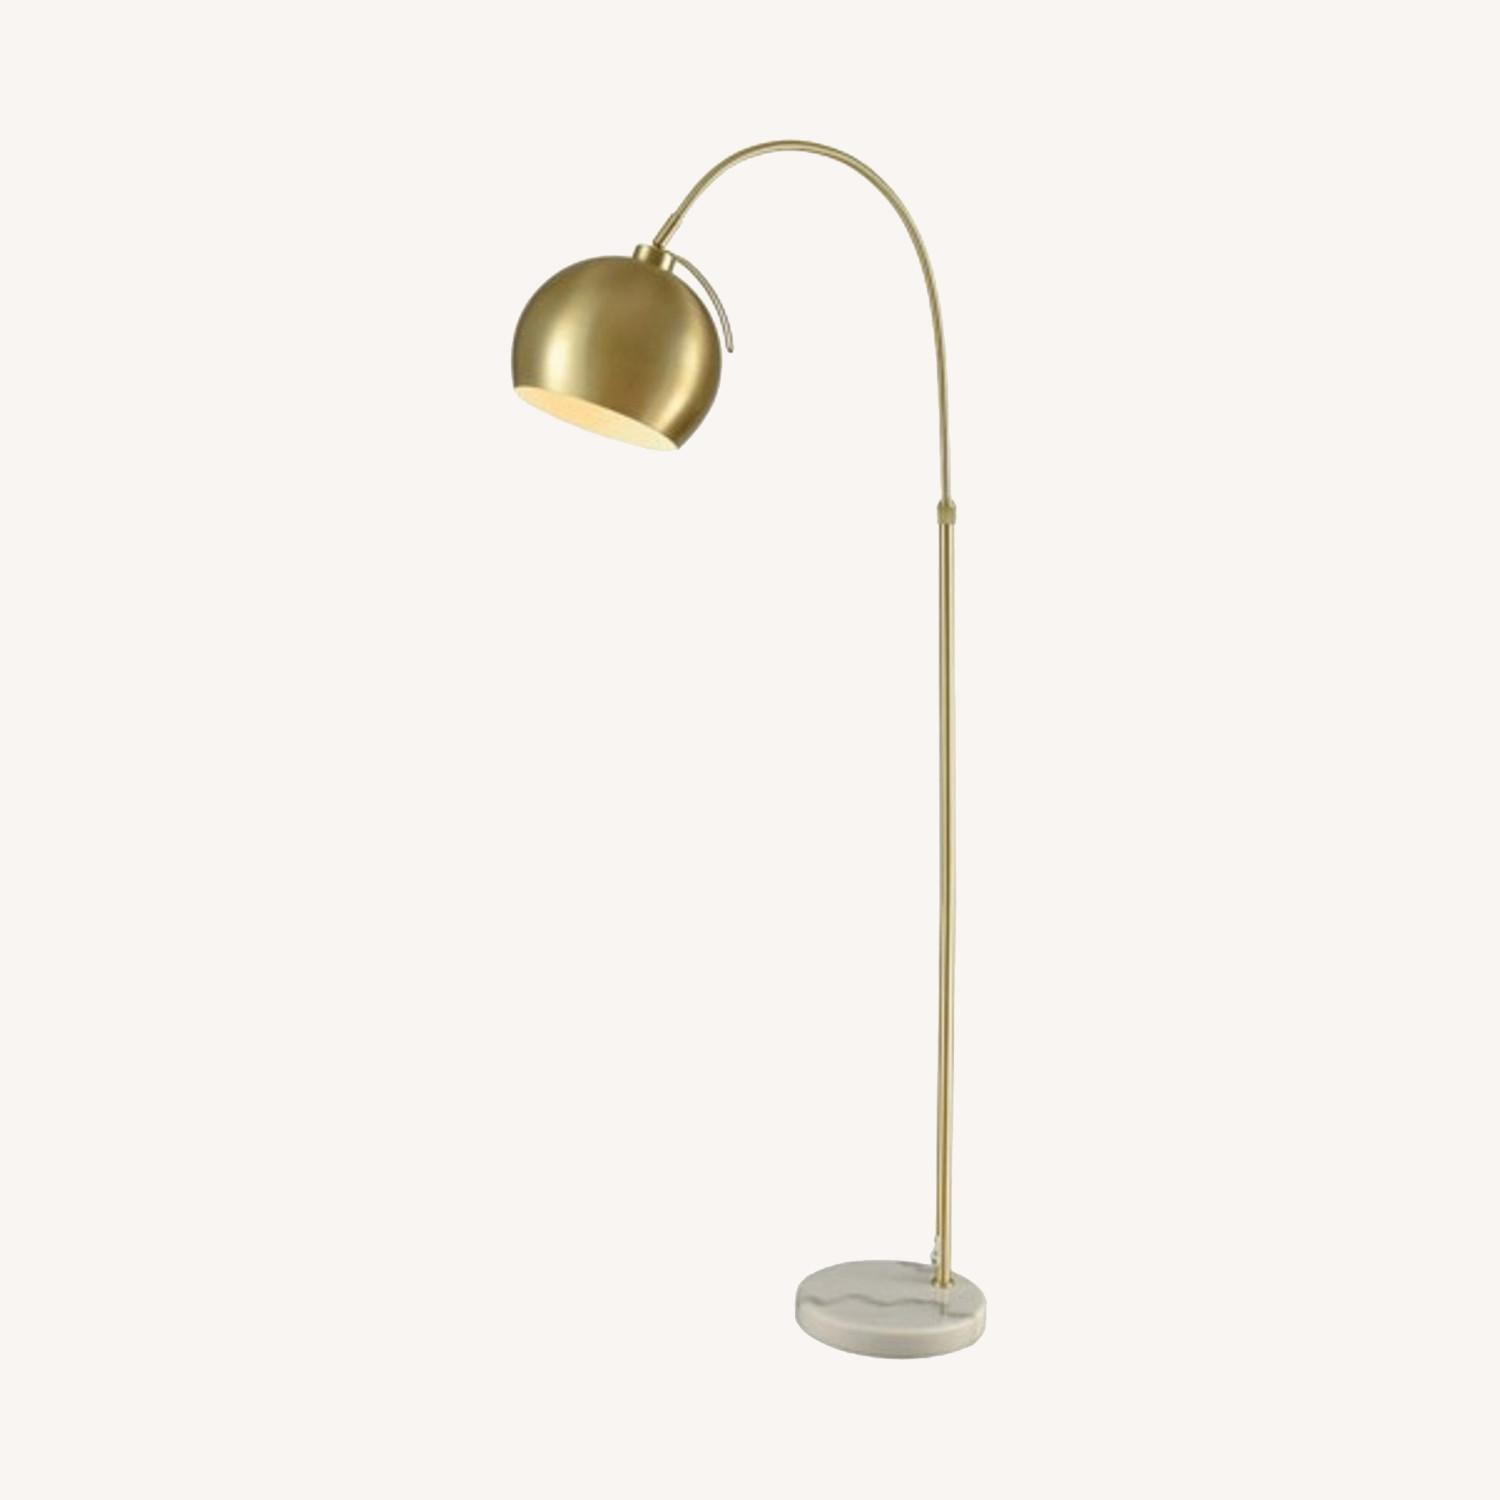 Gold Midcentury Curved Floor Lamp, Marble - image-0